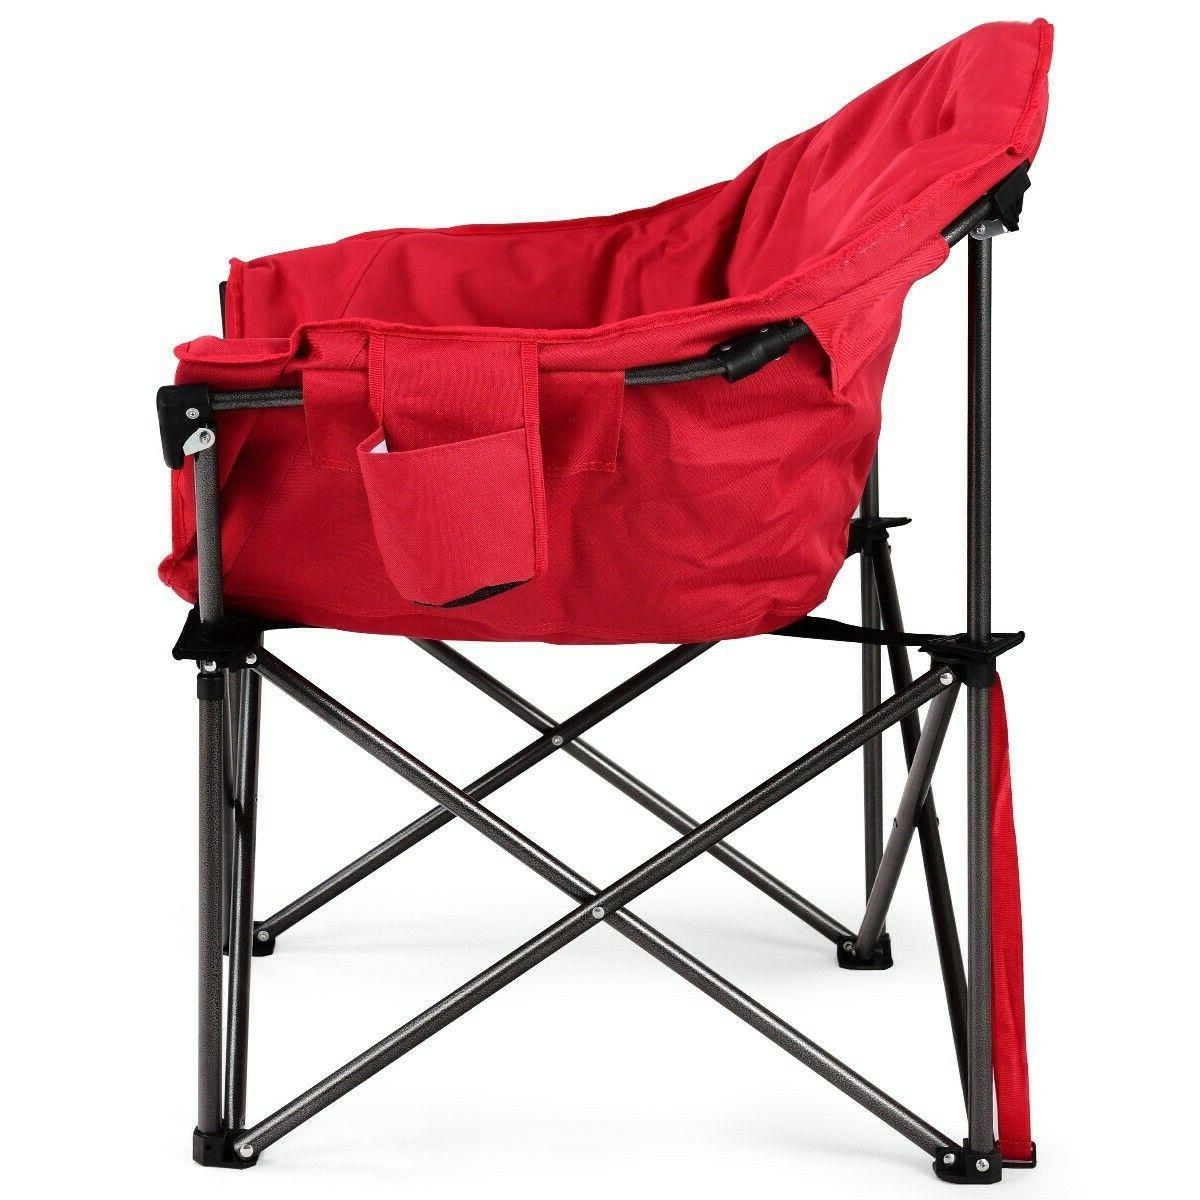 Oversized Moon Chair Camping Hiking Furniture 34